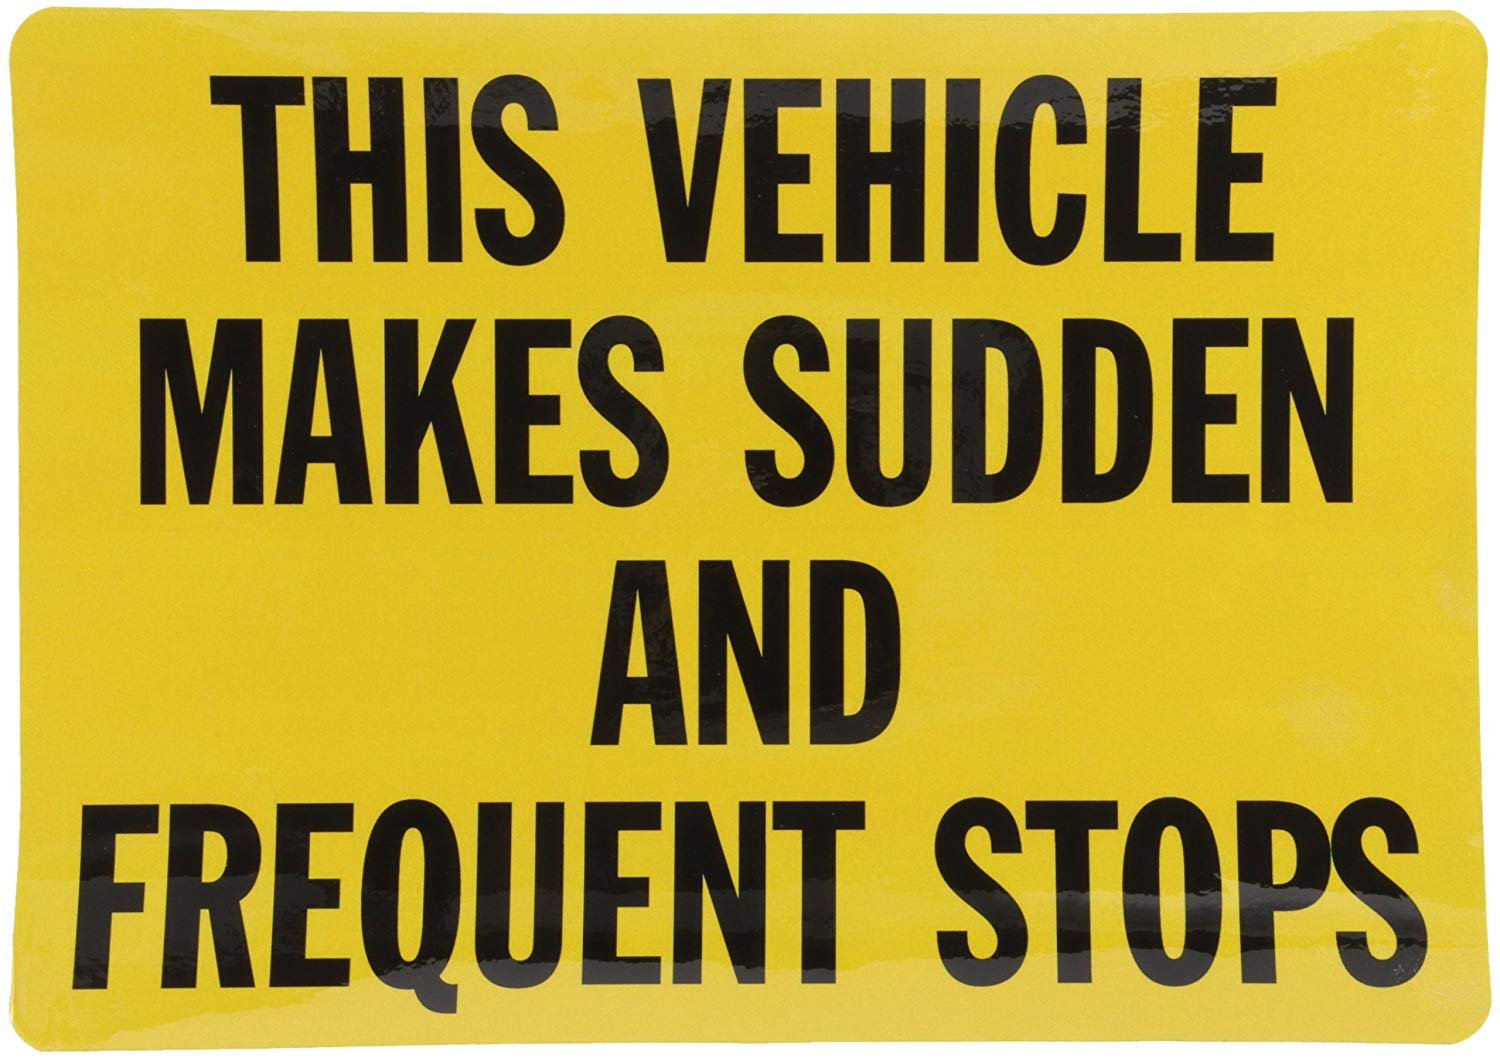 Smartsign 3m Engineer Grade Reflective Label Legend This Vehicle Makes Sudden Stops